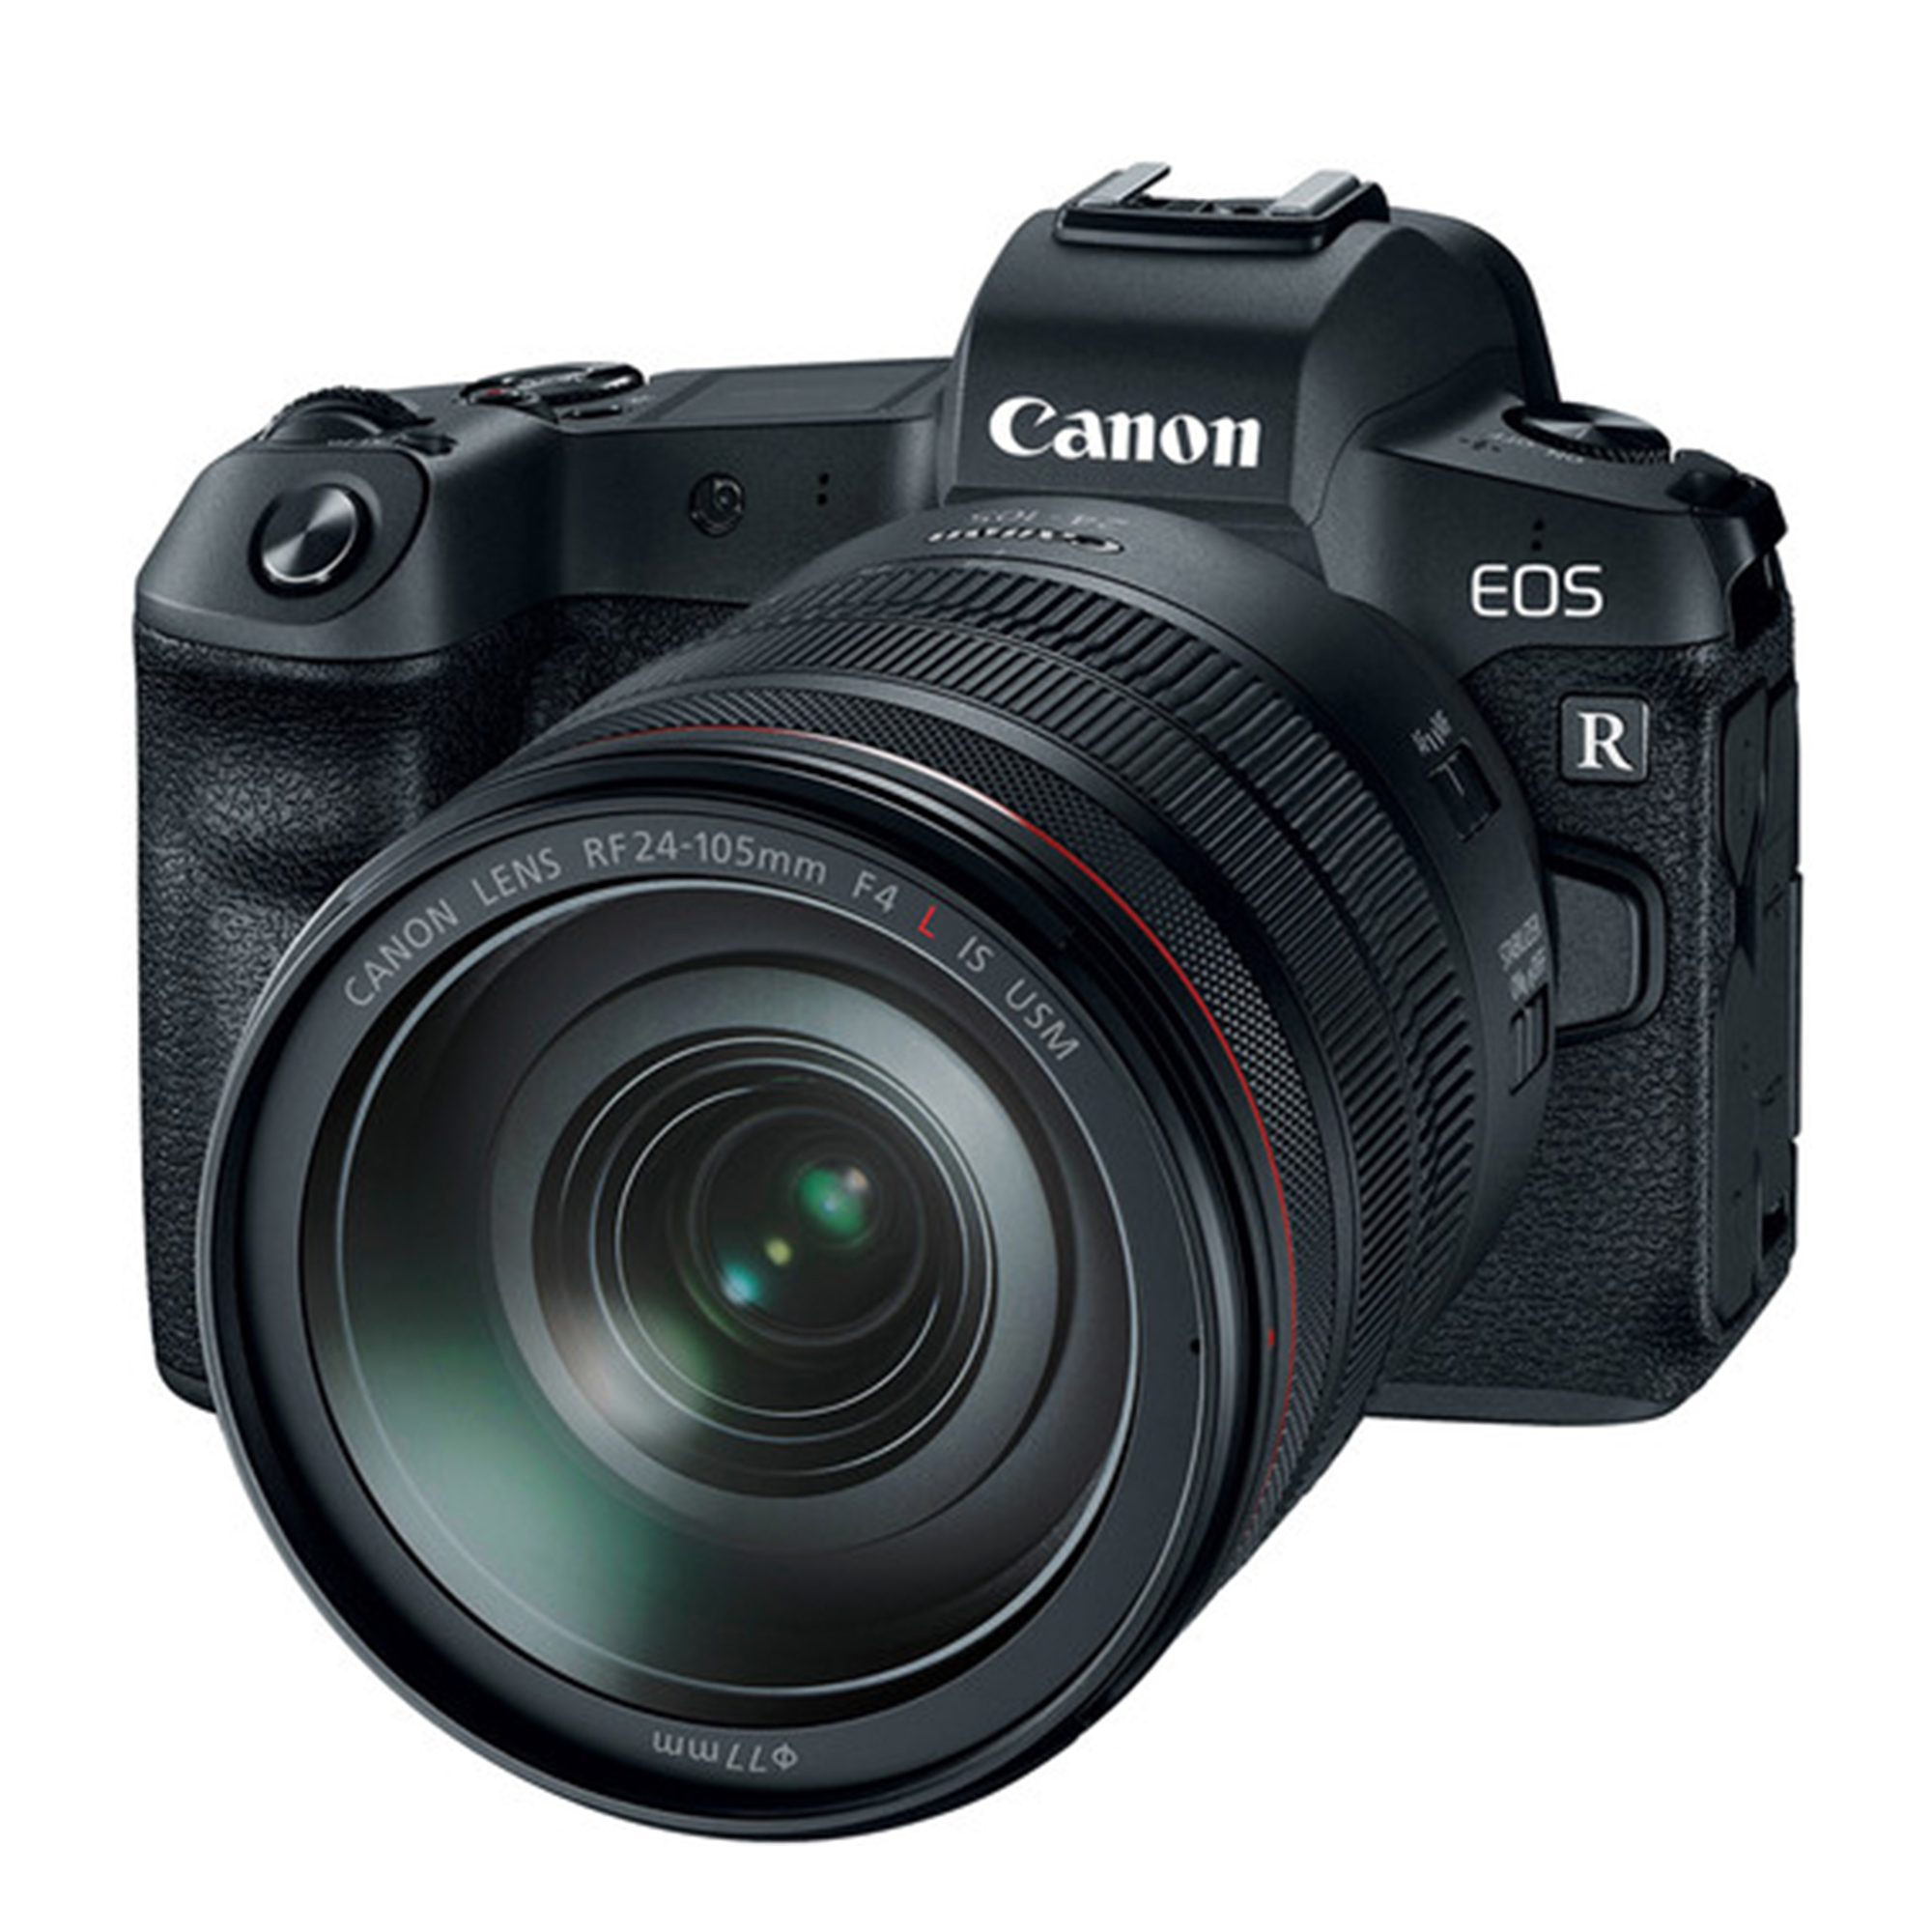 canon EOS R Mirrorless Digital Camera + RF 24-105mm F4 L IS USM Lens